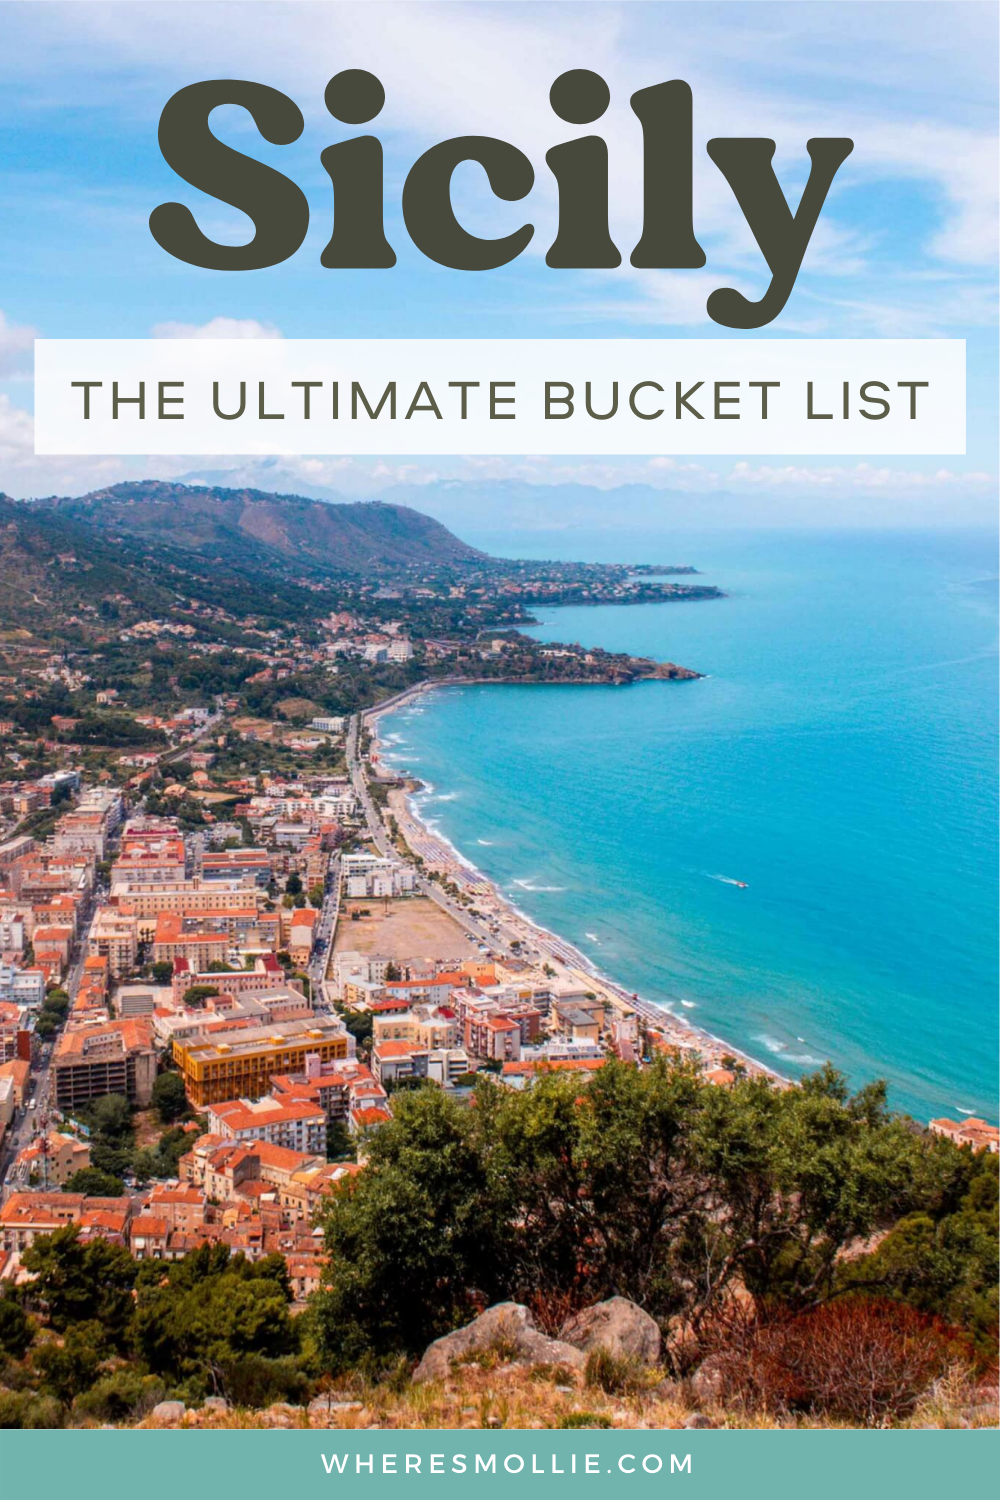 Things to do in Sicily the ultimate bucket list for your Italian ...